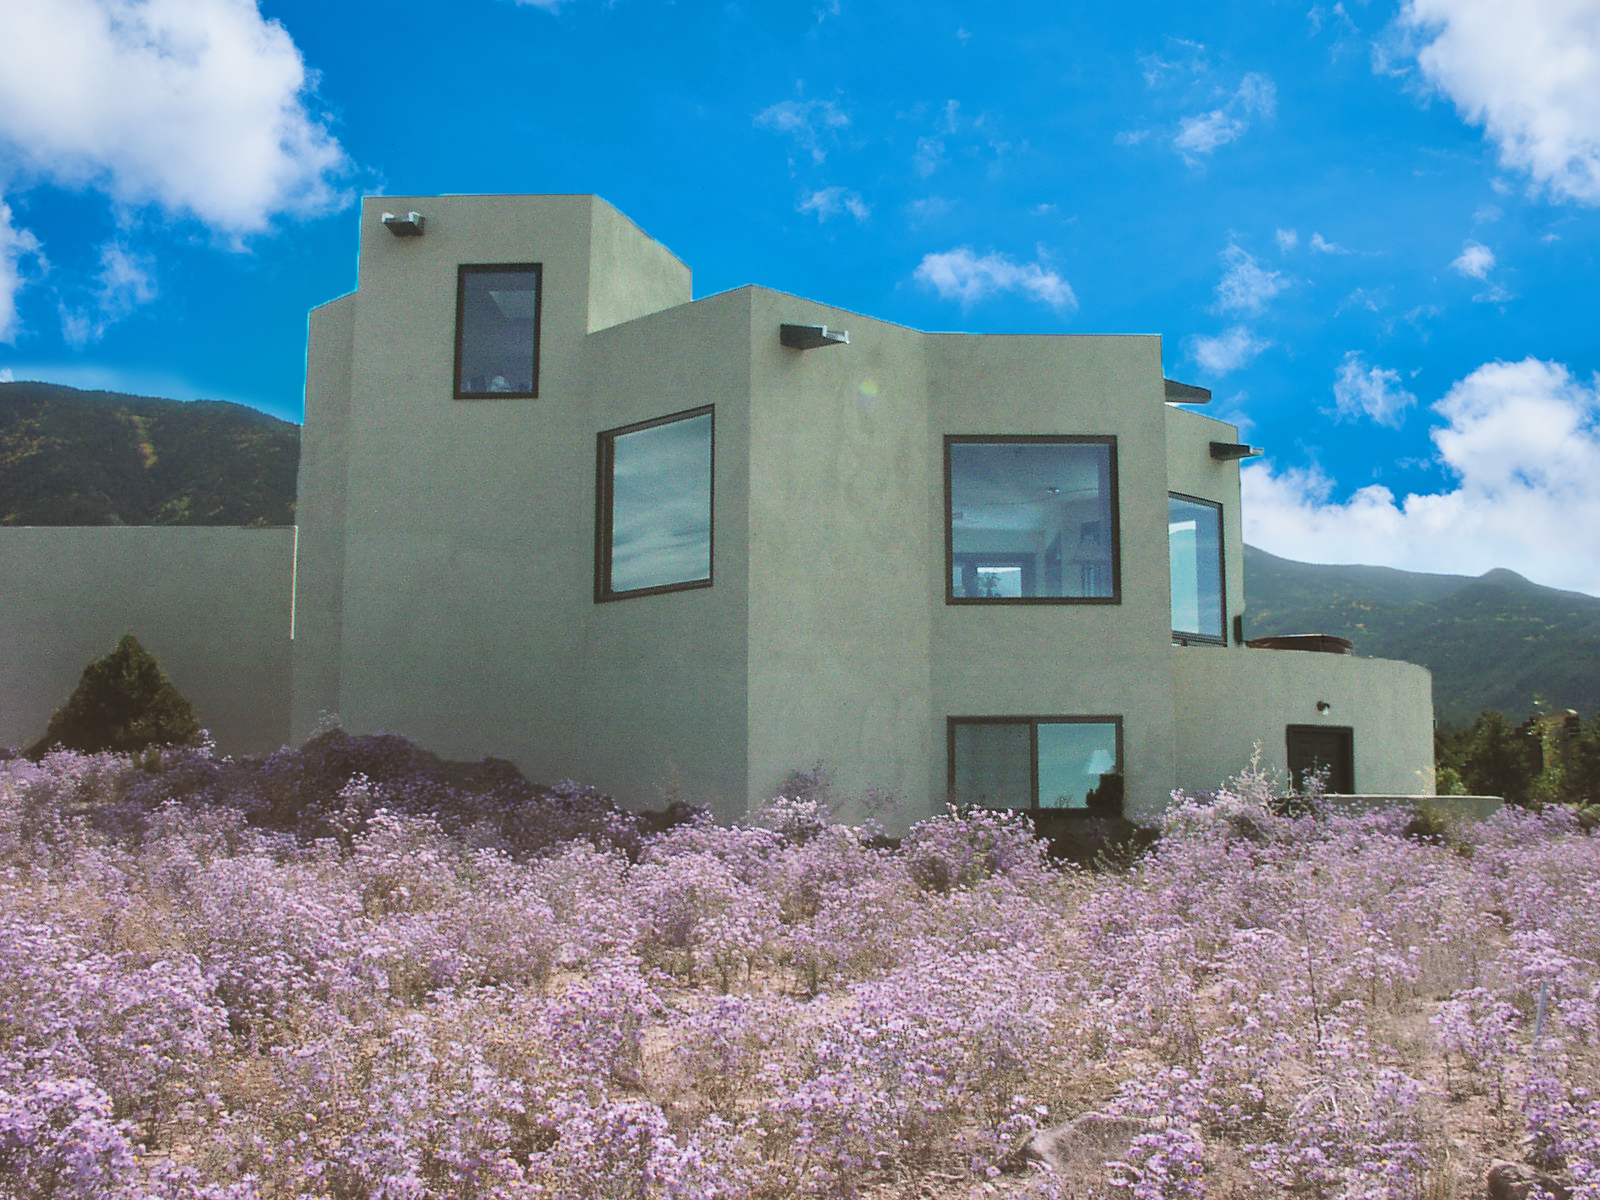 Vacation Rental Apartment In Northern New Mexico The